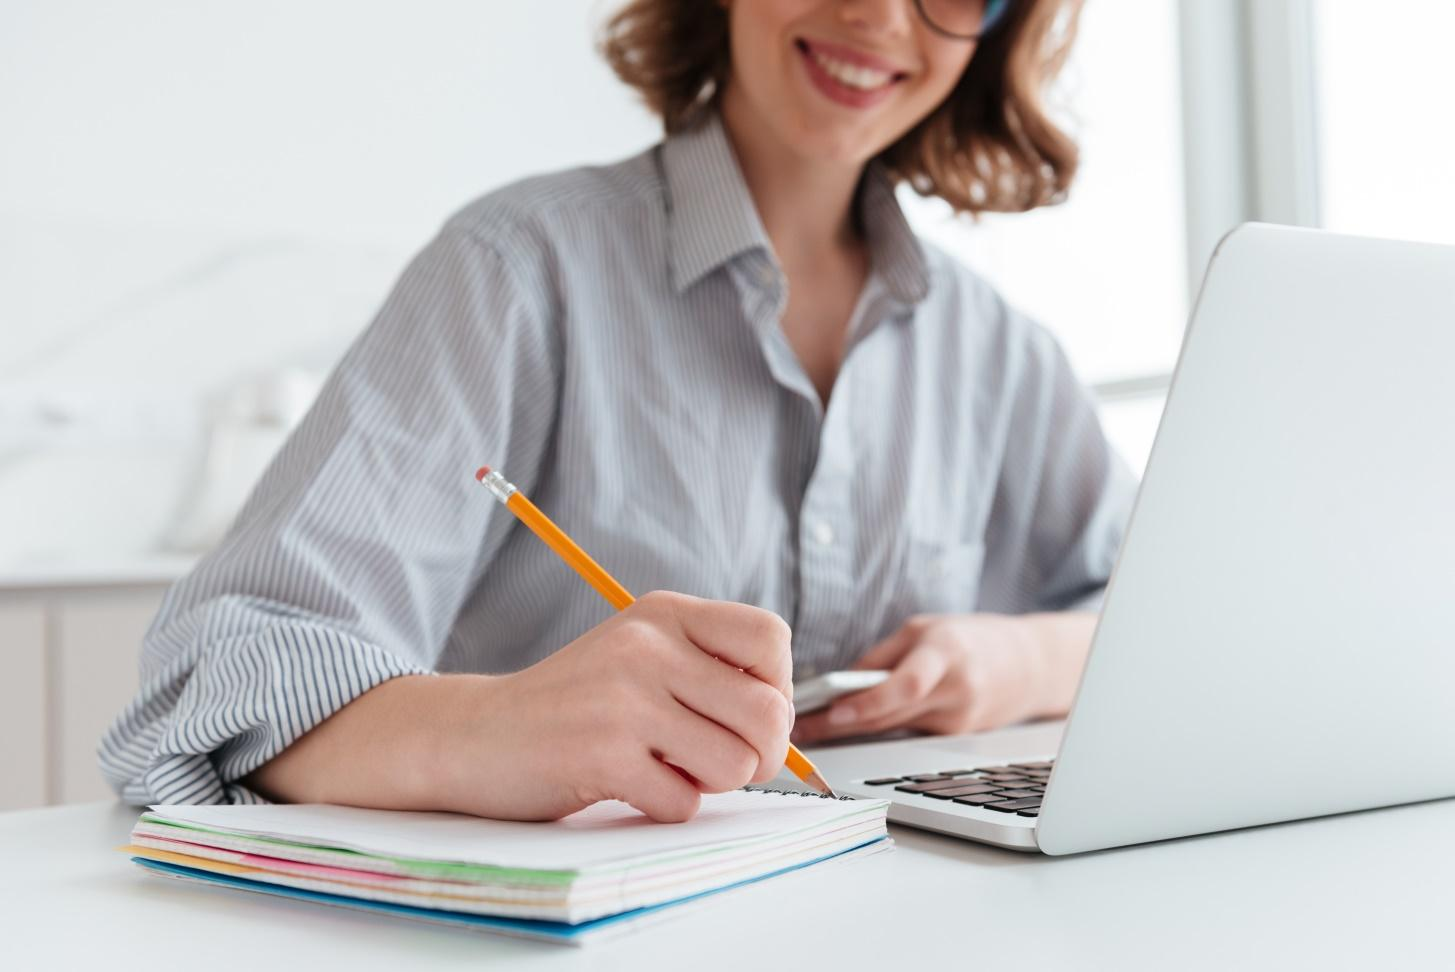 young-smiling-woman-striped-shirt-taking-notes-while-sitting-table-light-apartment